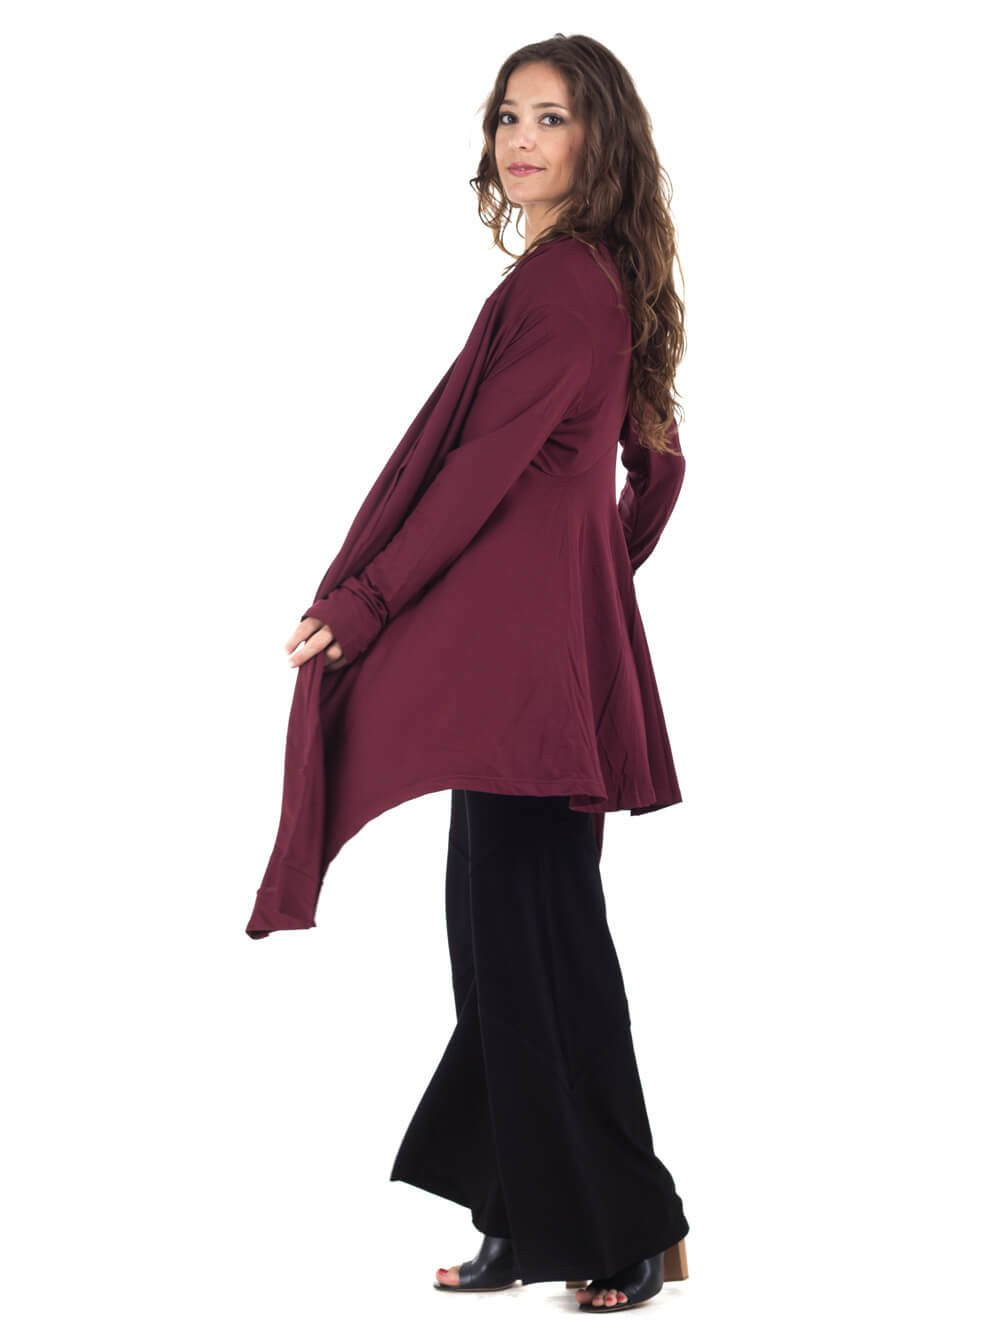 Womens Rayon Jersey Flow Jacket in Wine with a Rayon Jersey Maxi Dress in Black